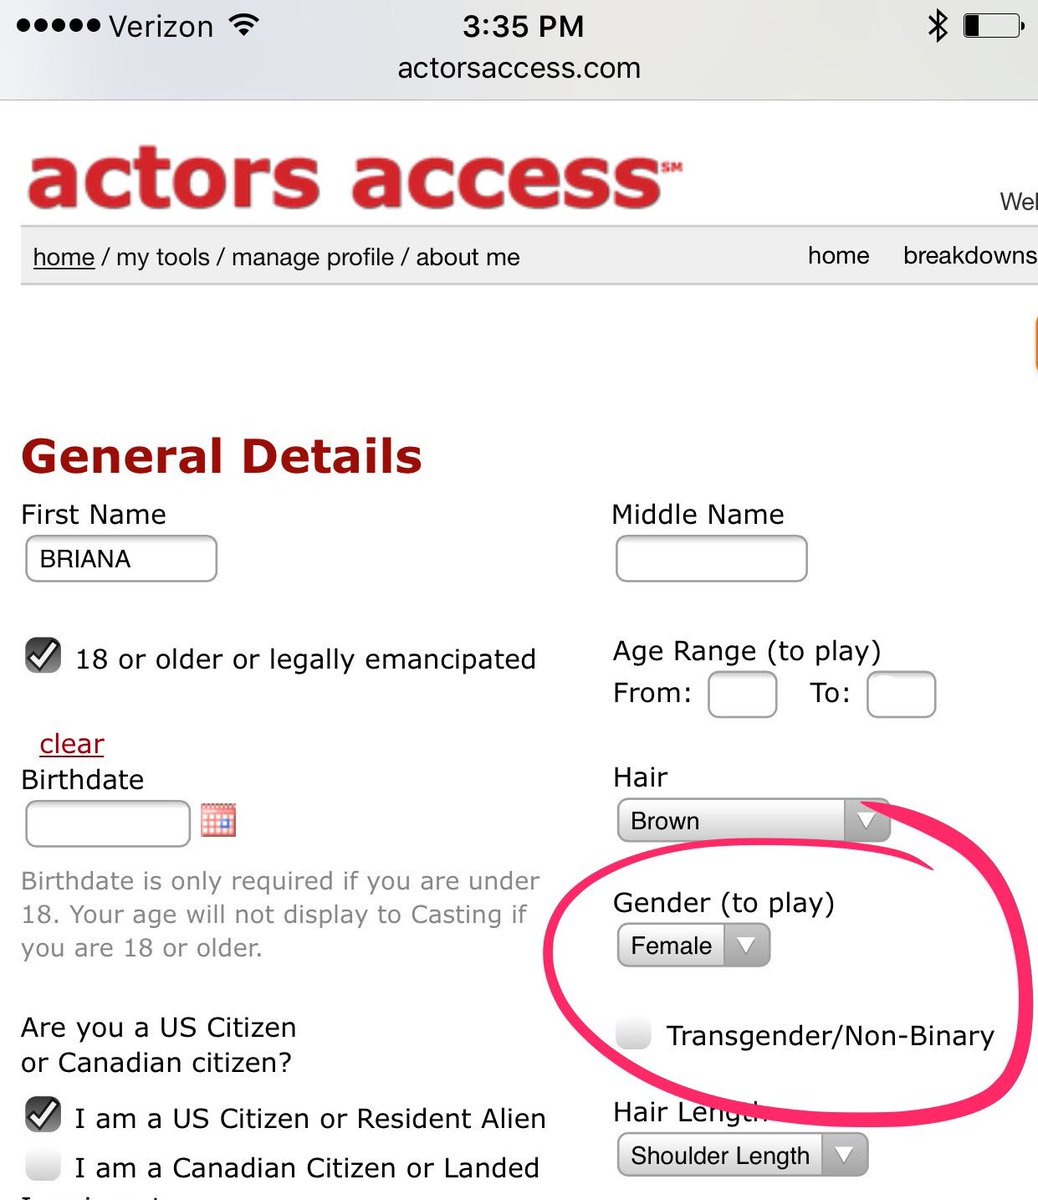 Just noticed that @ActorsAccess now has an option for transgender/non-binary actors. Good on ya, AA. #representationmatters #equality <br>http://pic.twitter.com/zfWDdQgY4A